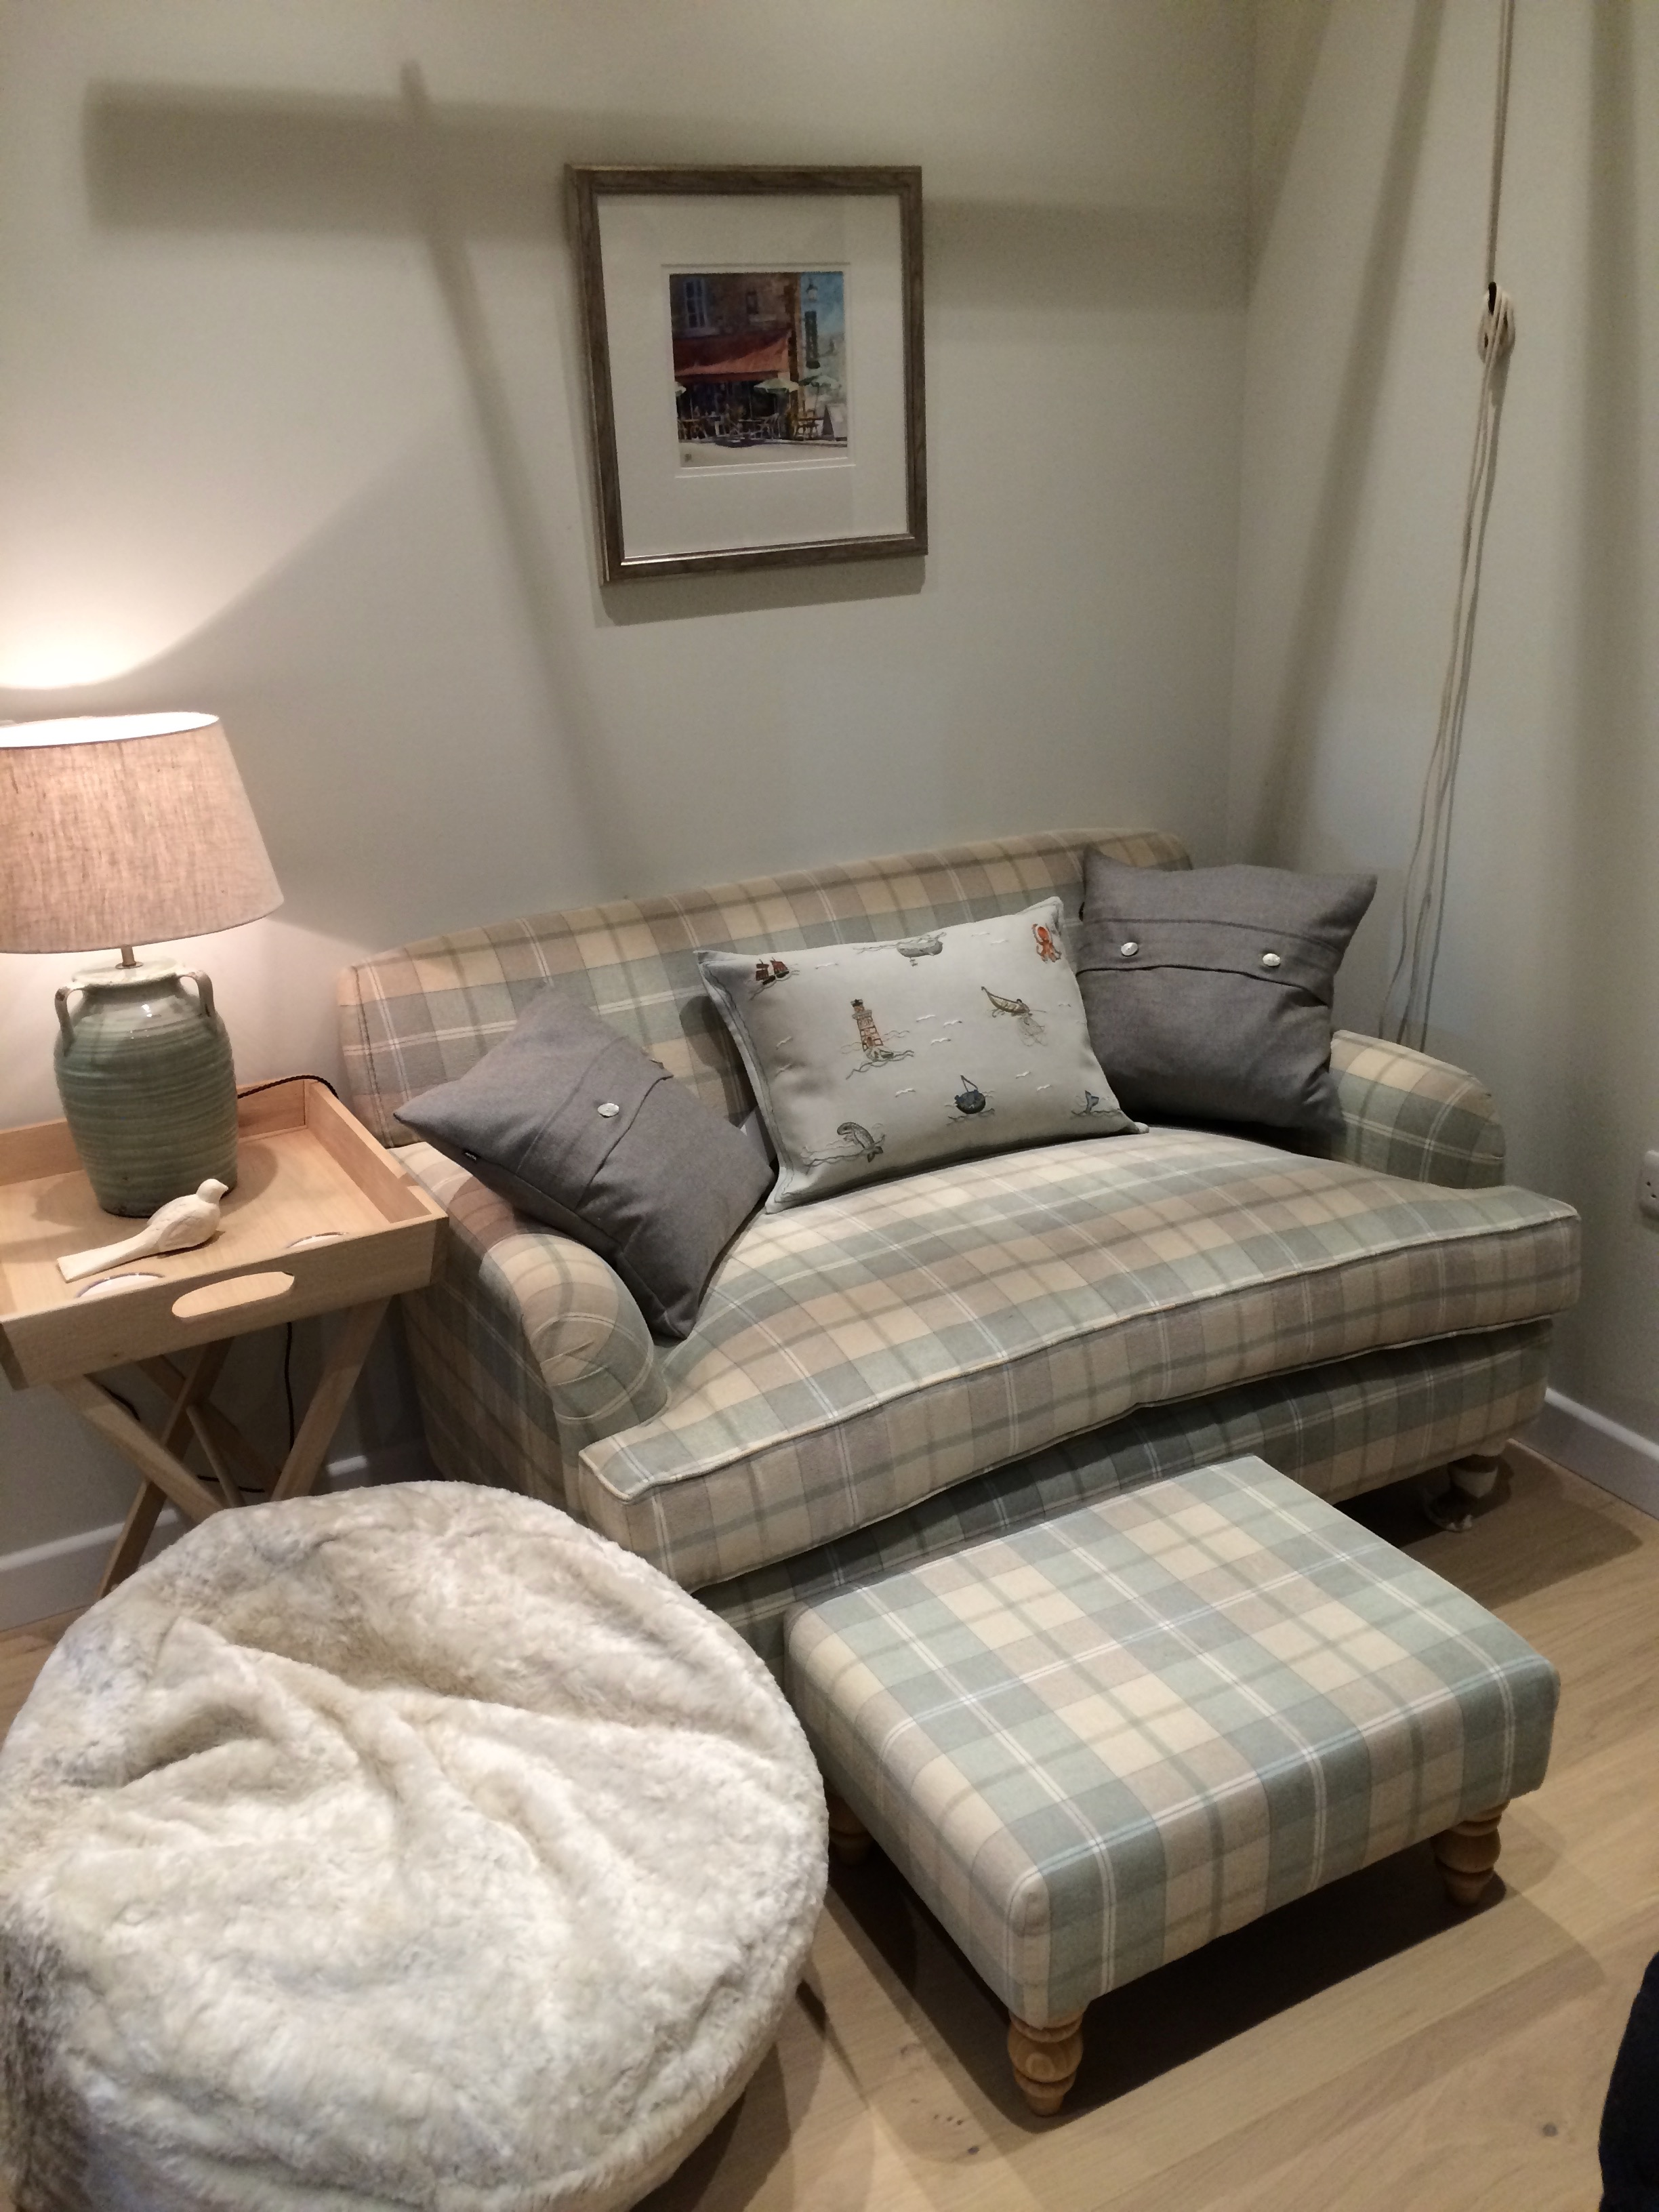 SCOTTISH BOTHIE COTTAGE - Snug + TV Area